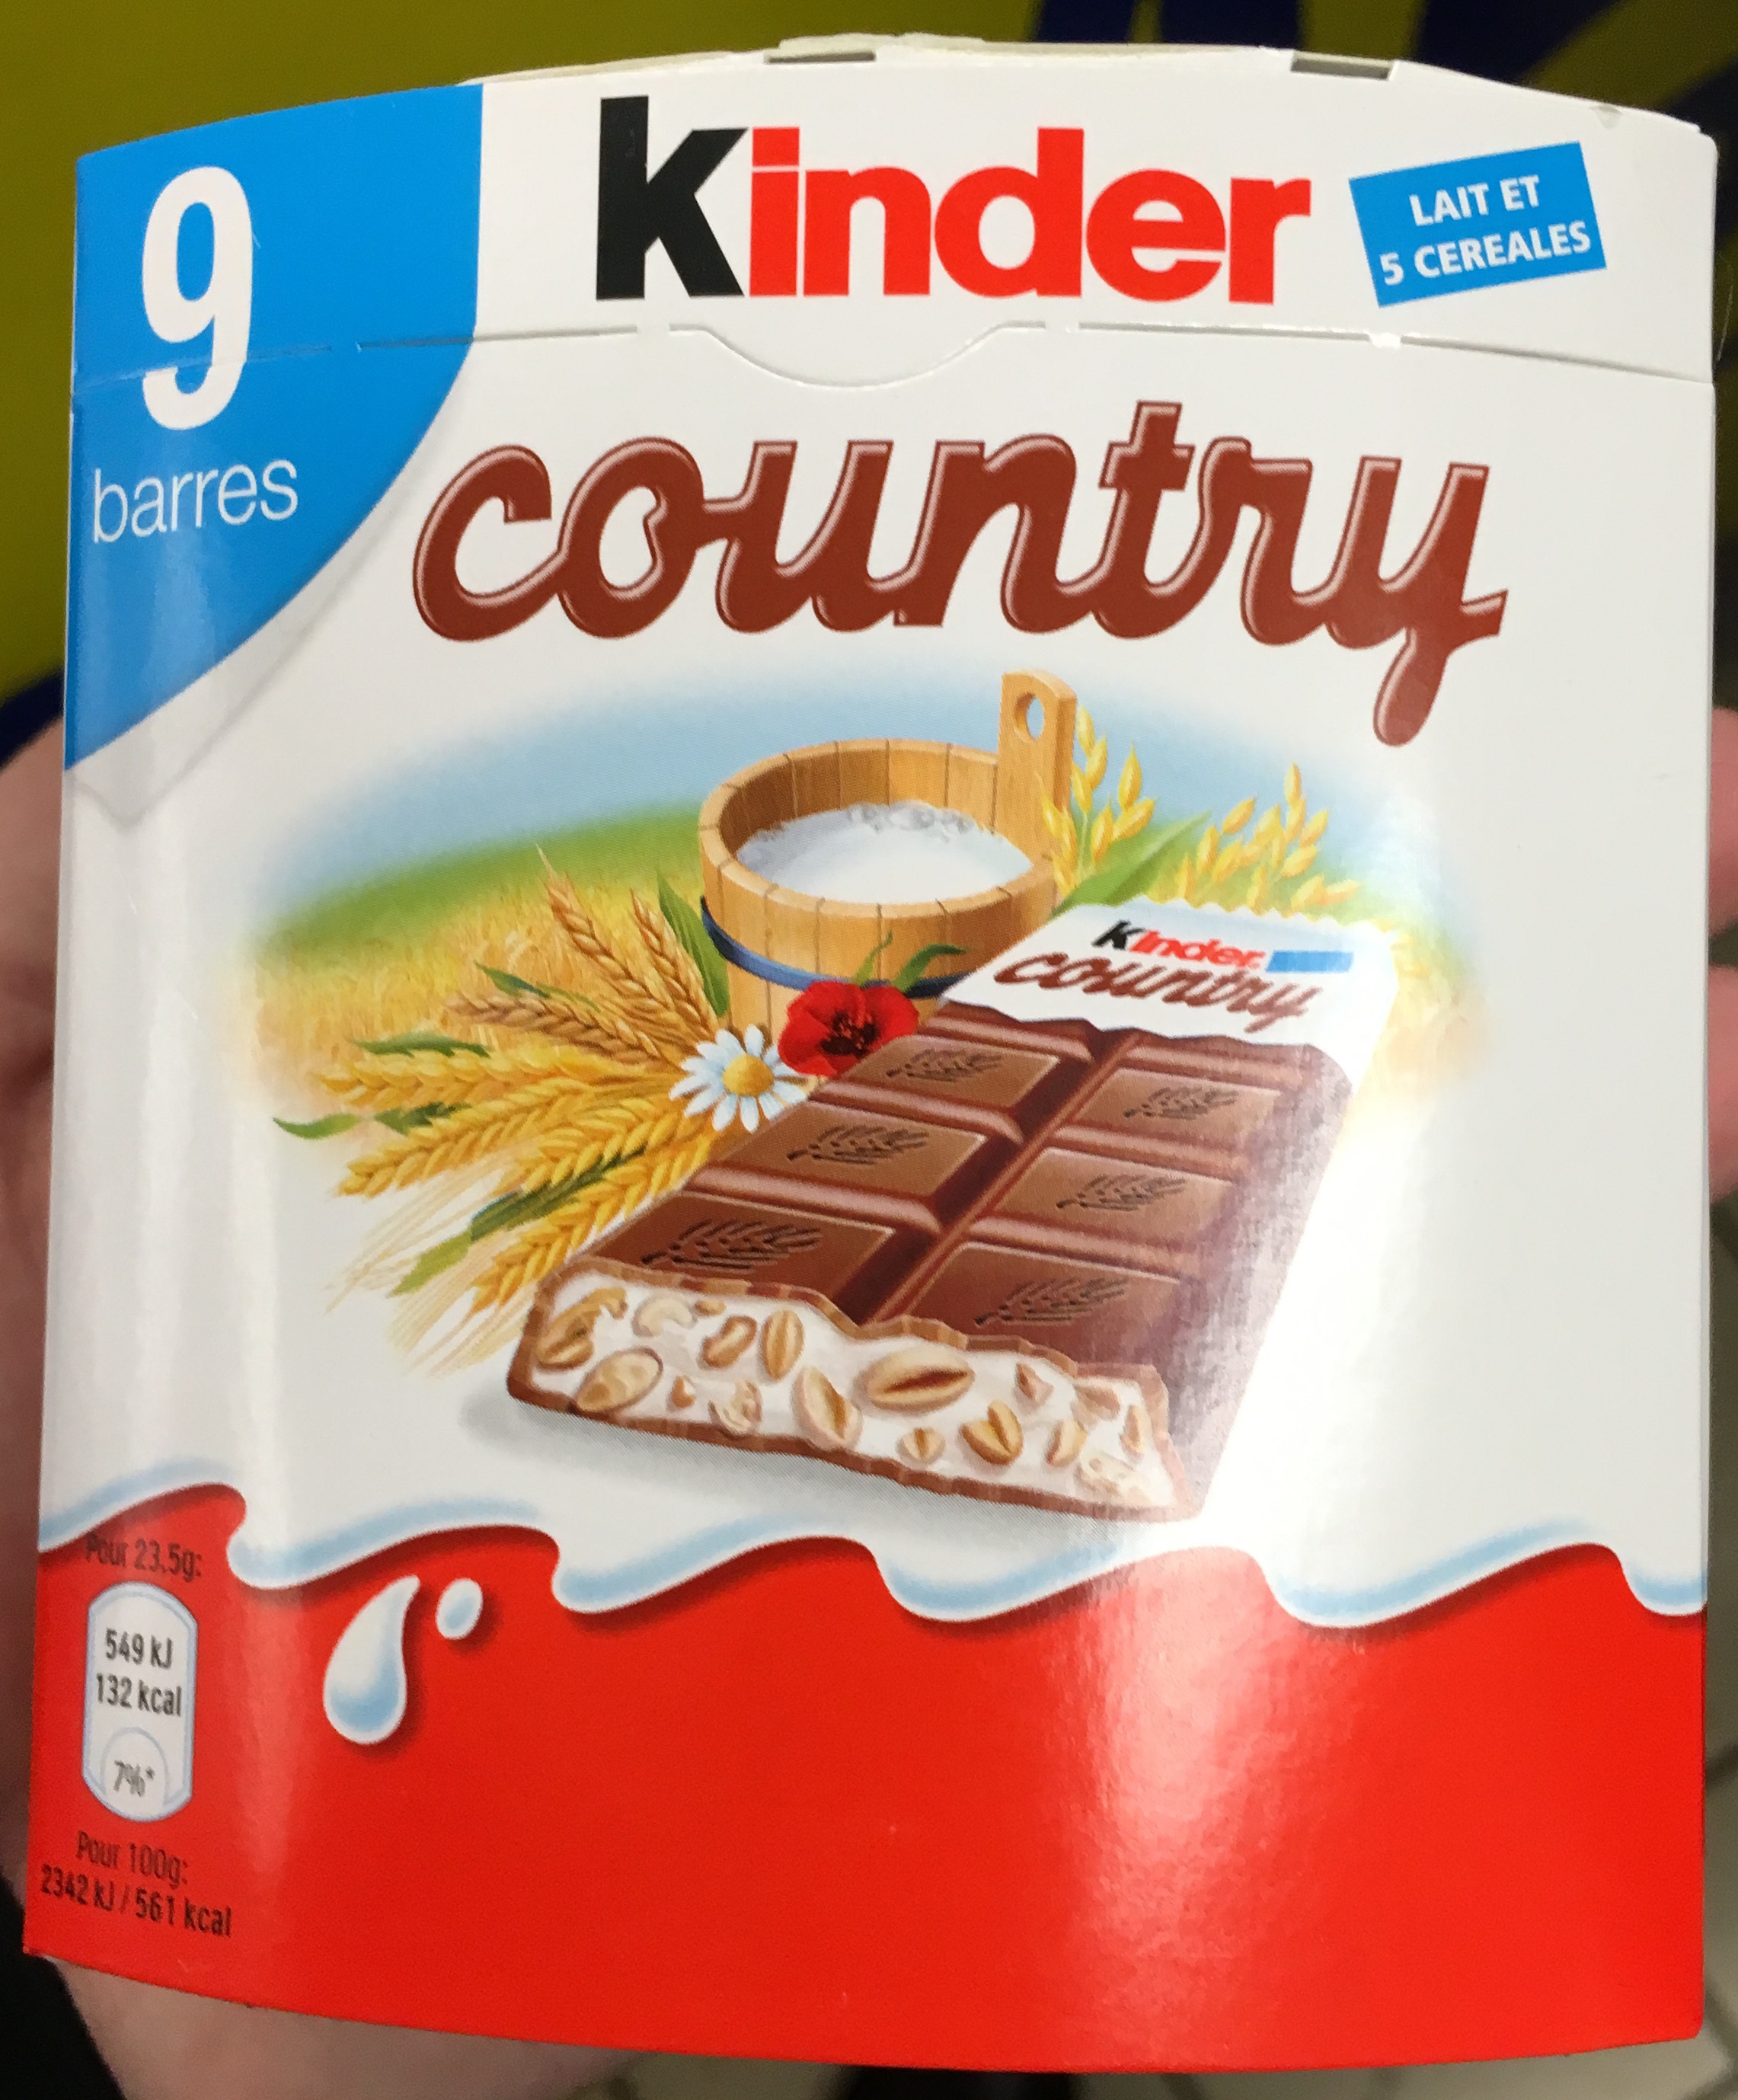 Kinder Country - 9 barres - Produit